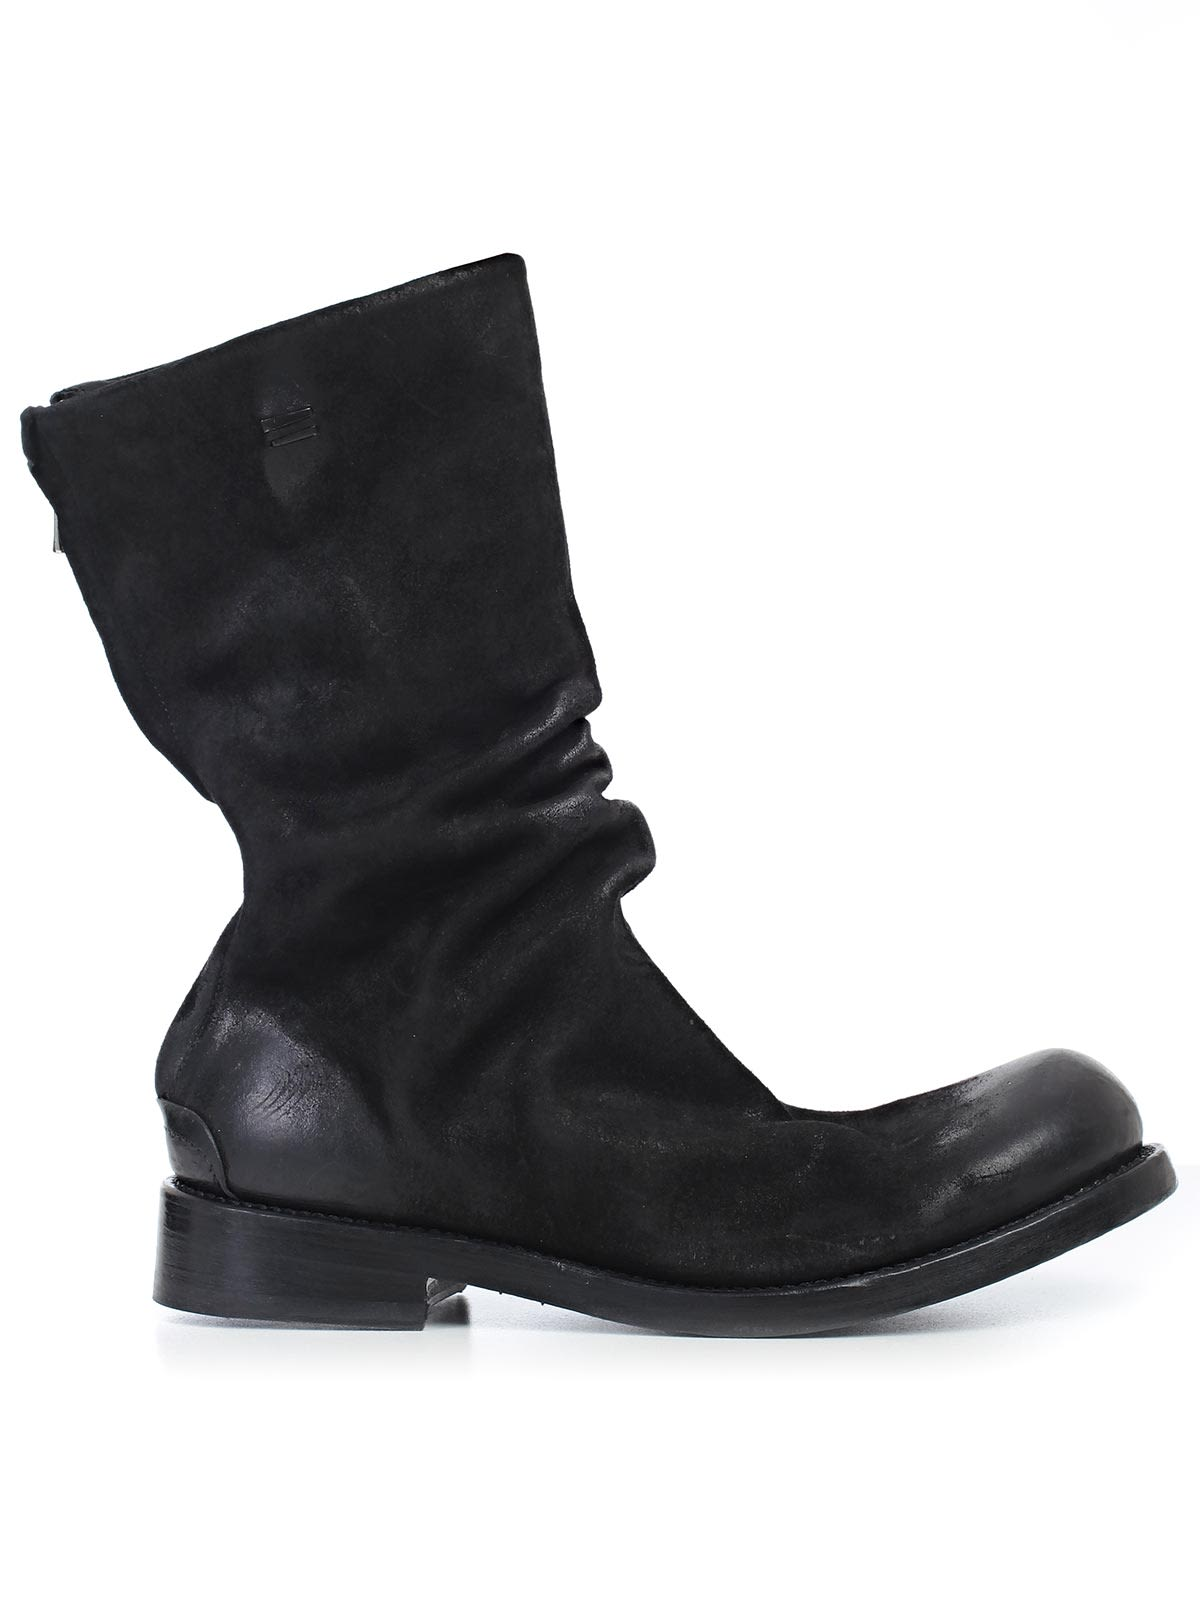 The Last Conspiracy Rear Zipped Ankle Boots